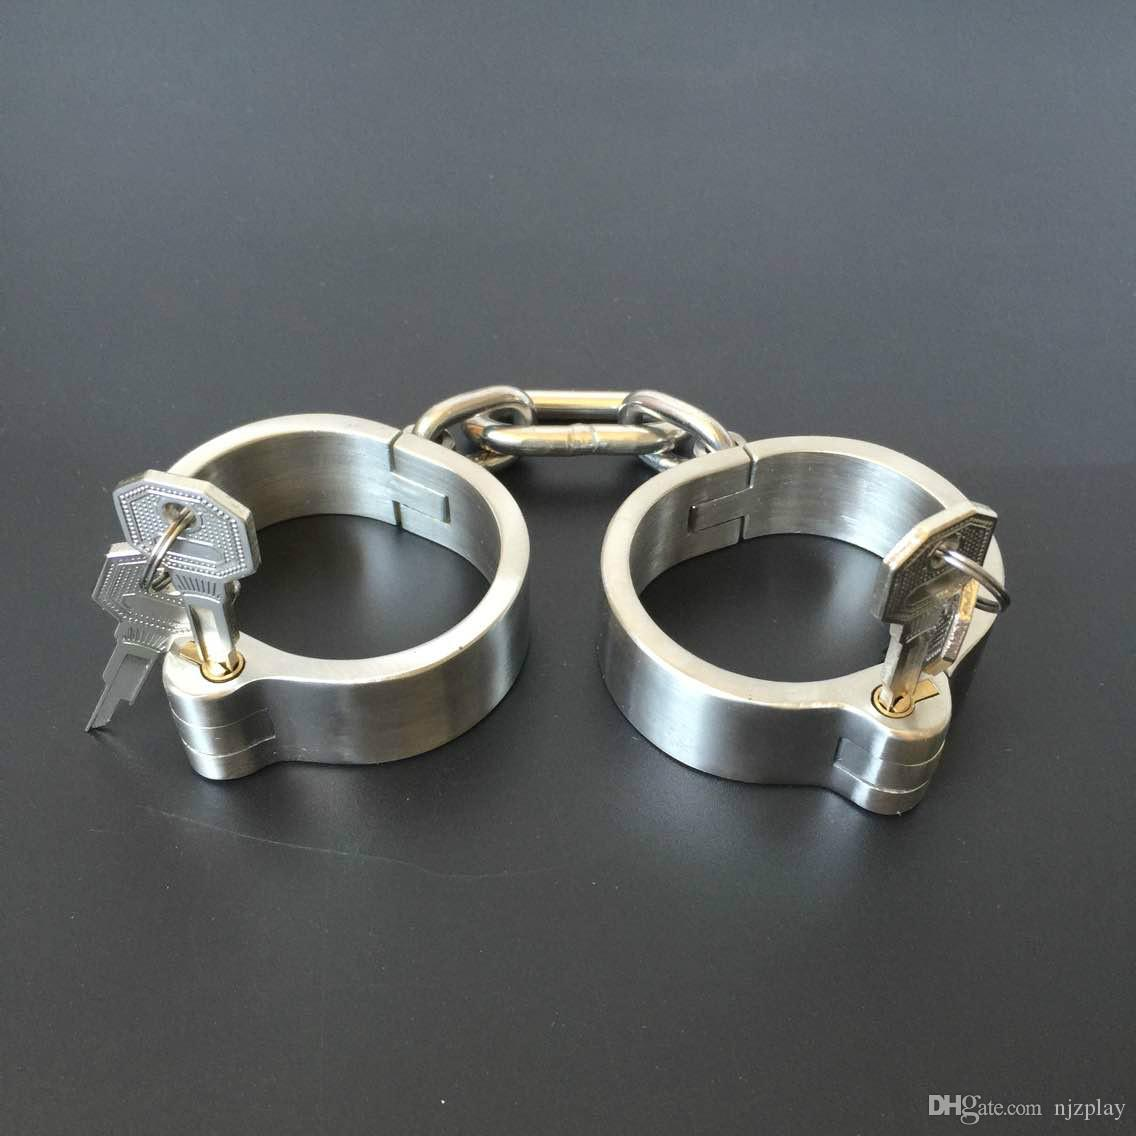 Hot sale!!!Unisex Stainless Steel Handcurffs Ankle Cuffs Collar Bondage Gear BDSM Toys And Sex Toys